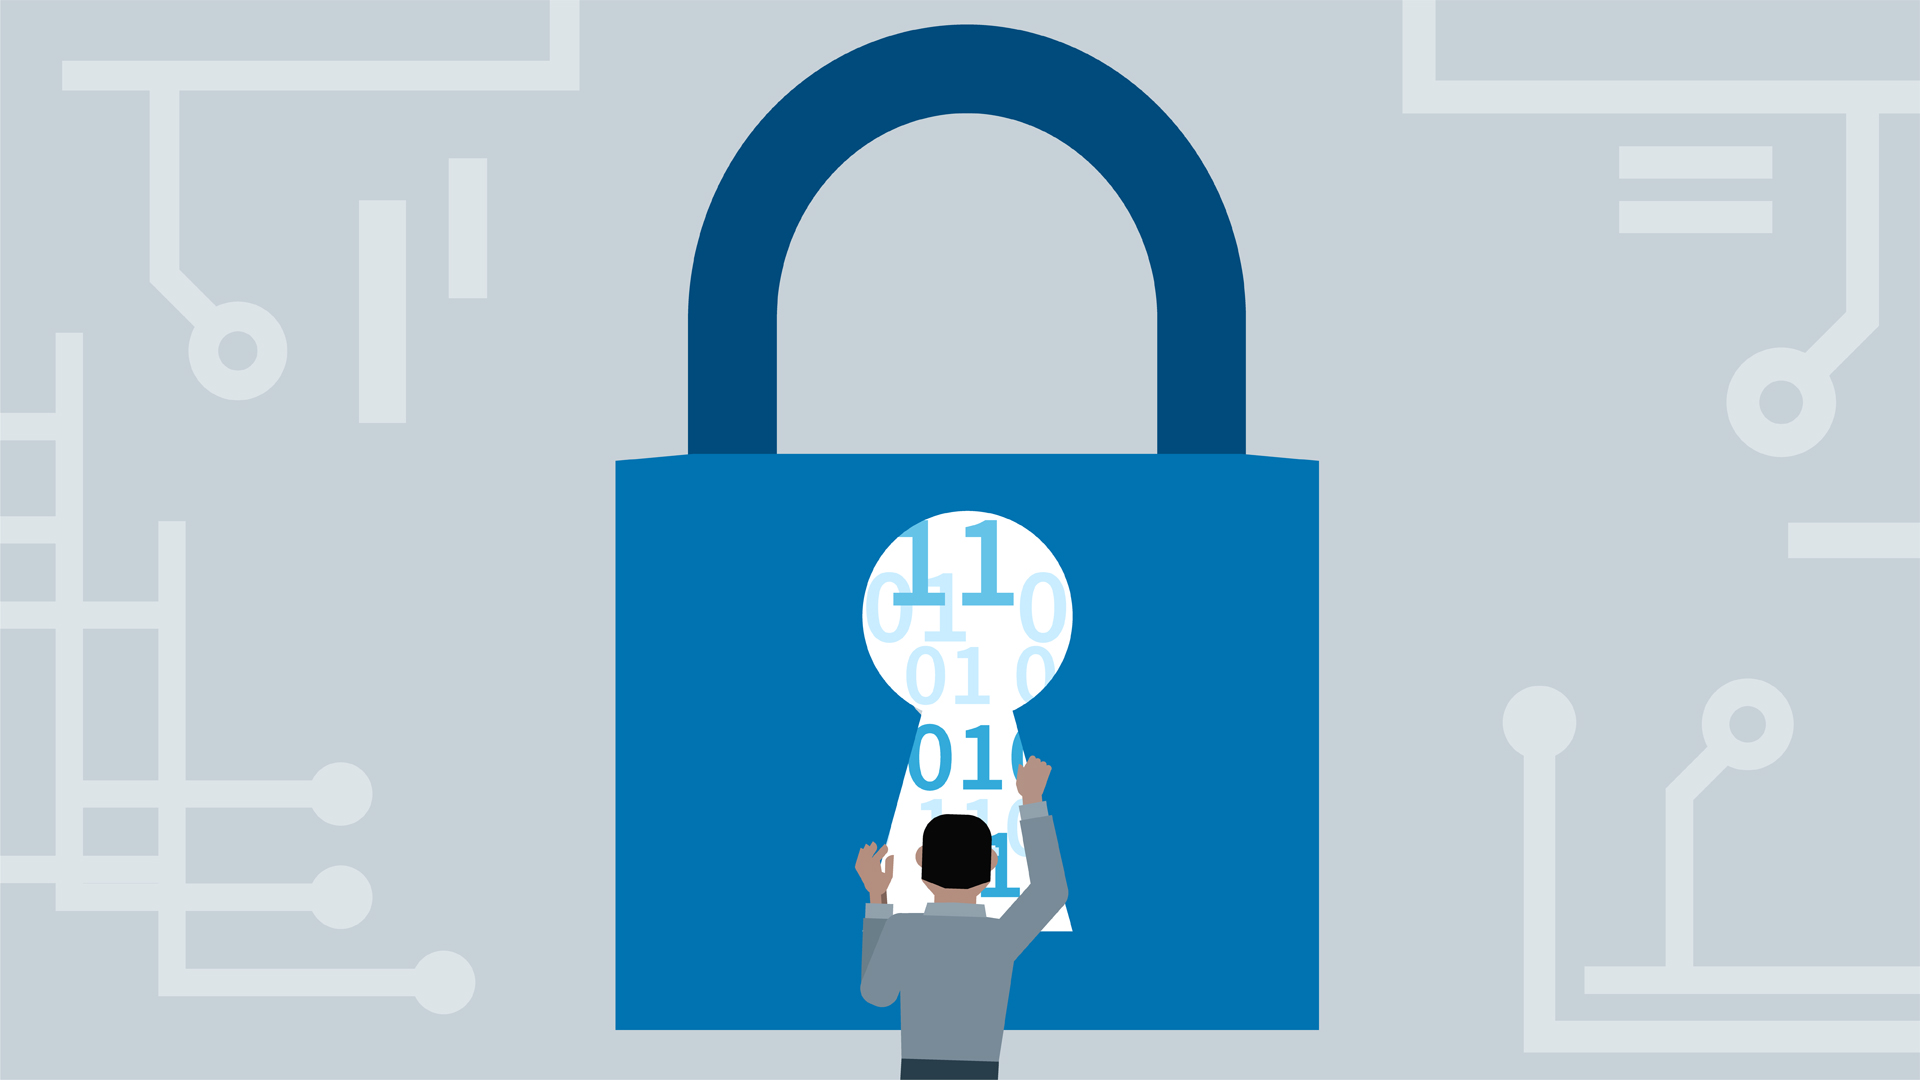 Vulnerability Management Systems And Security Information And Event